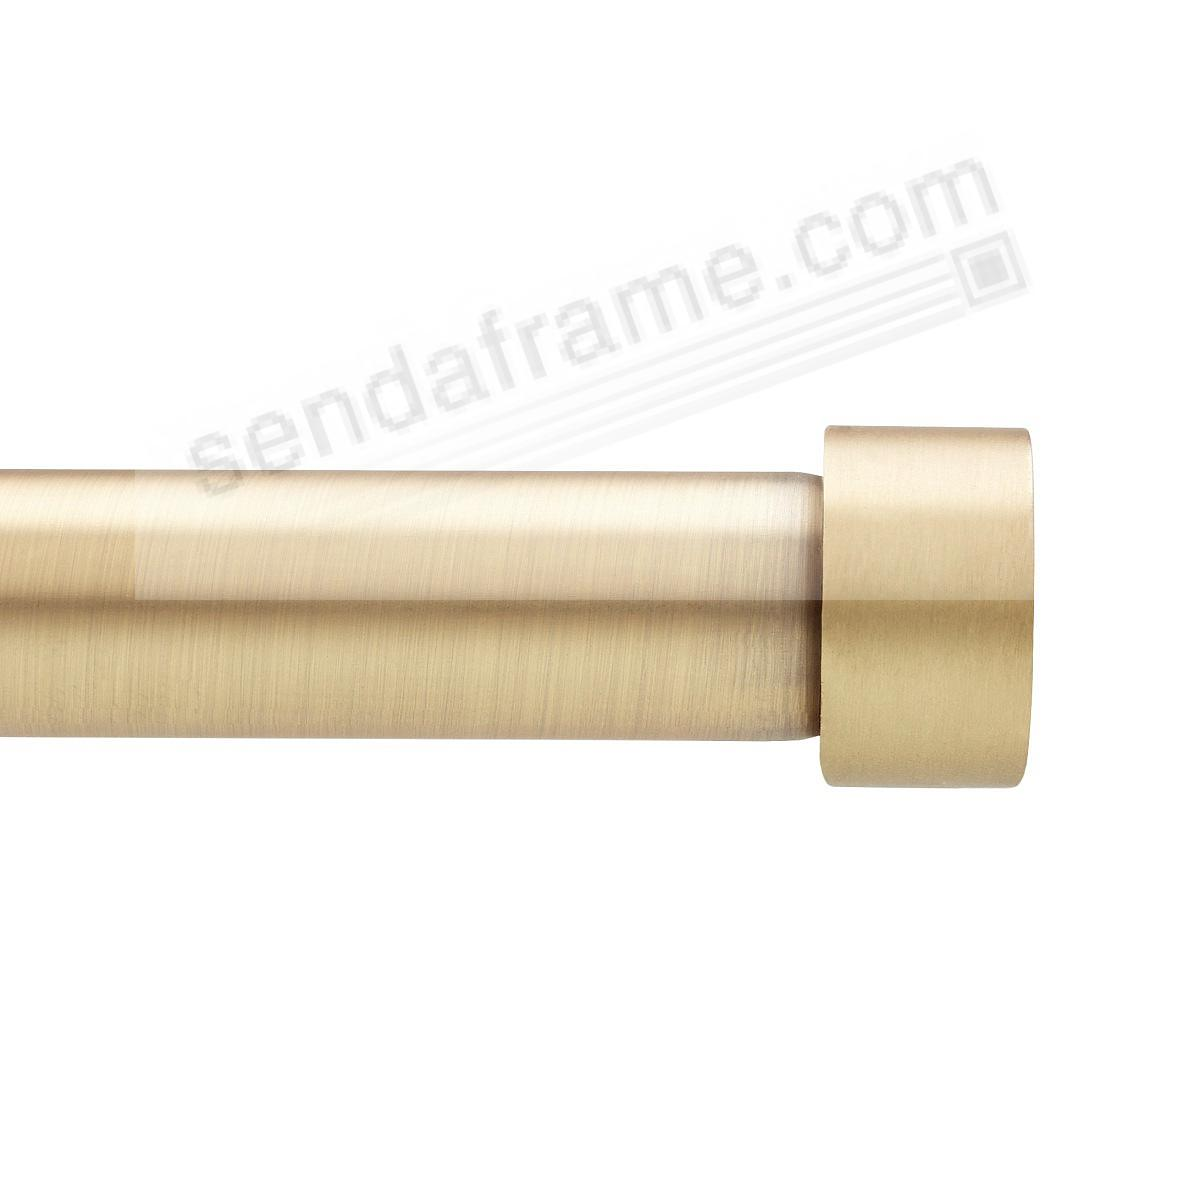 CAPPA 1in 66-120in BRASS SINGLE ROD Drapery Hardware by Umbra®